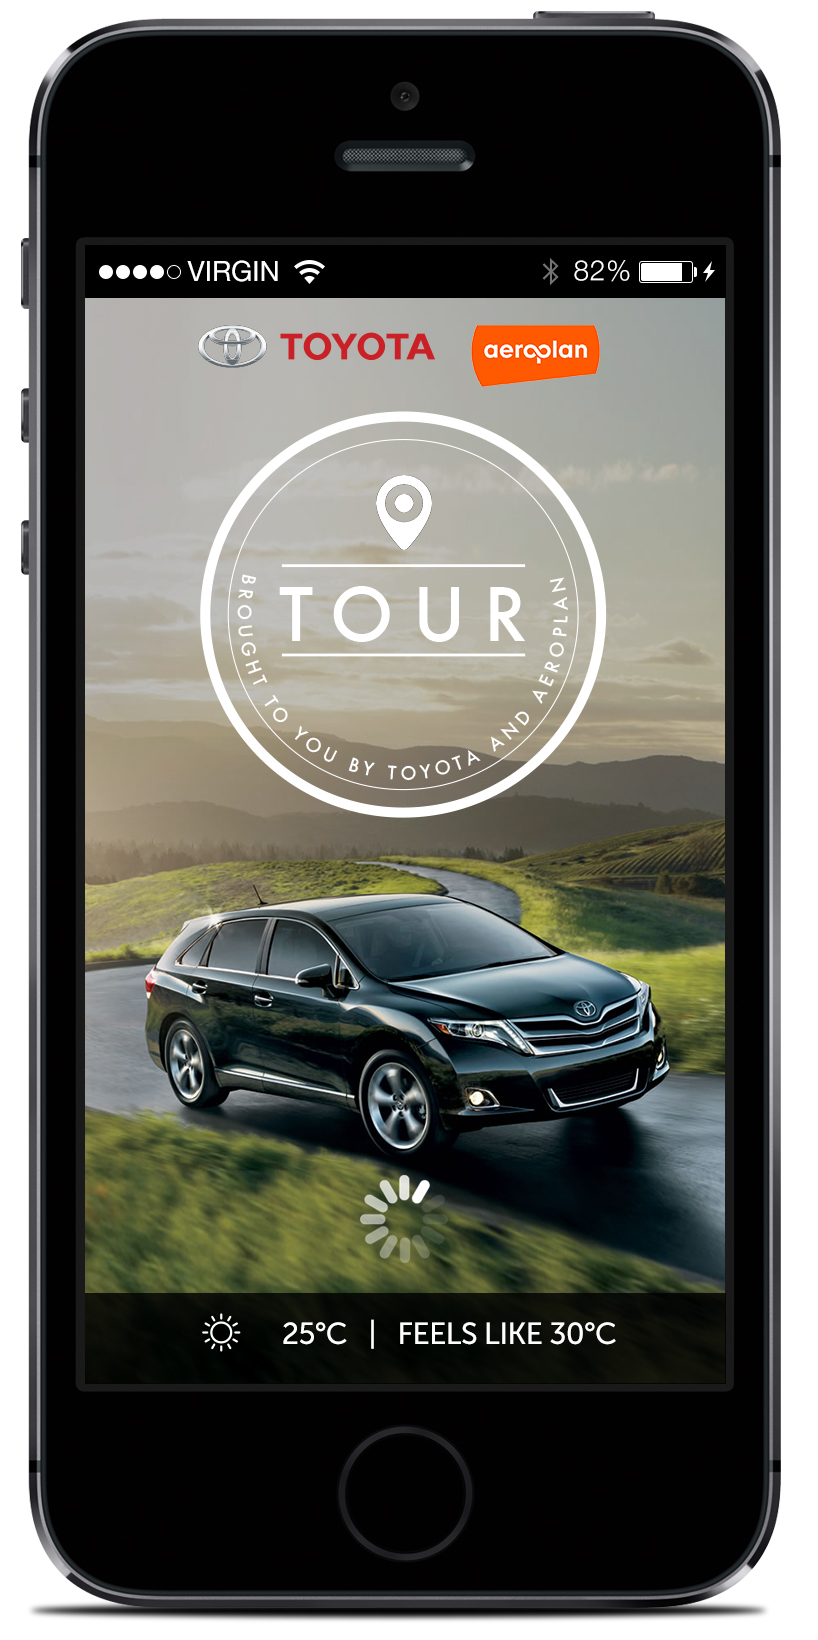 ToyotaTour_0000_Home Screen.jpg